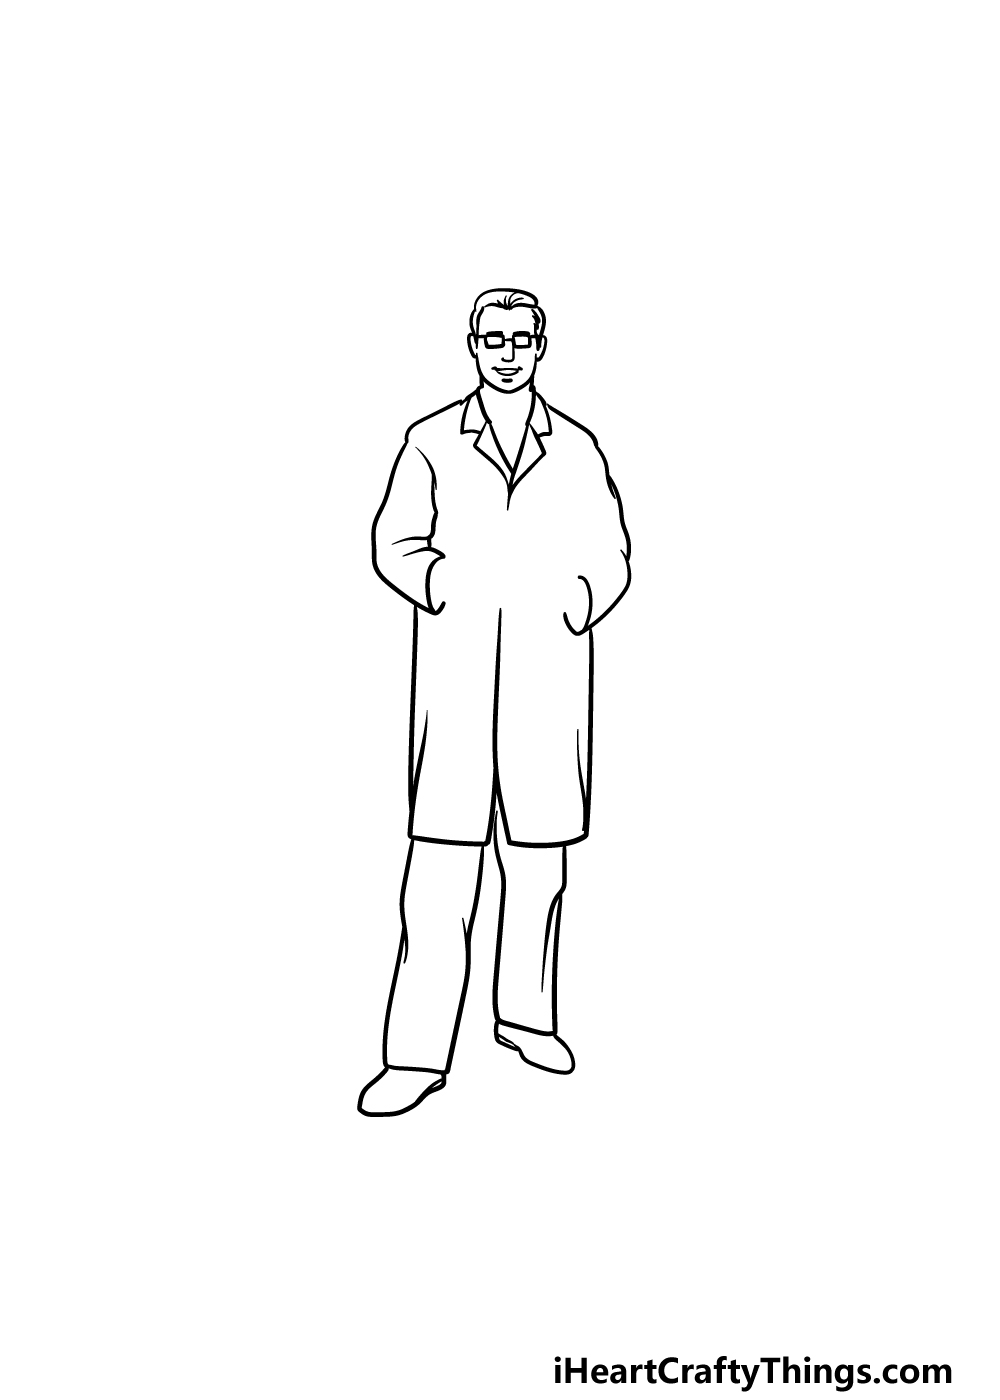 drawing a doctor step 3